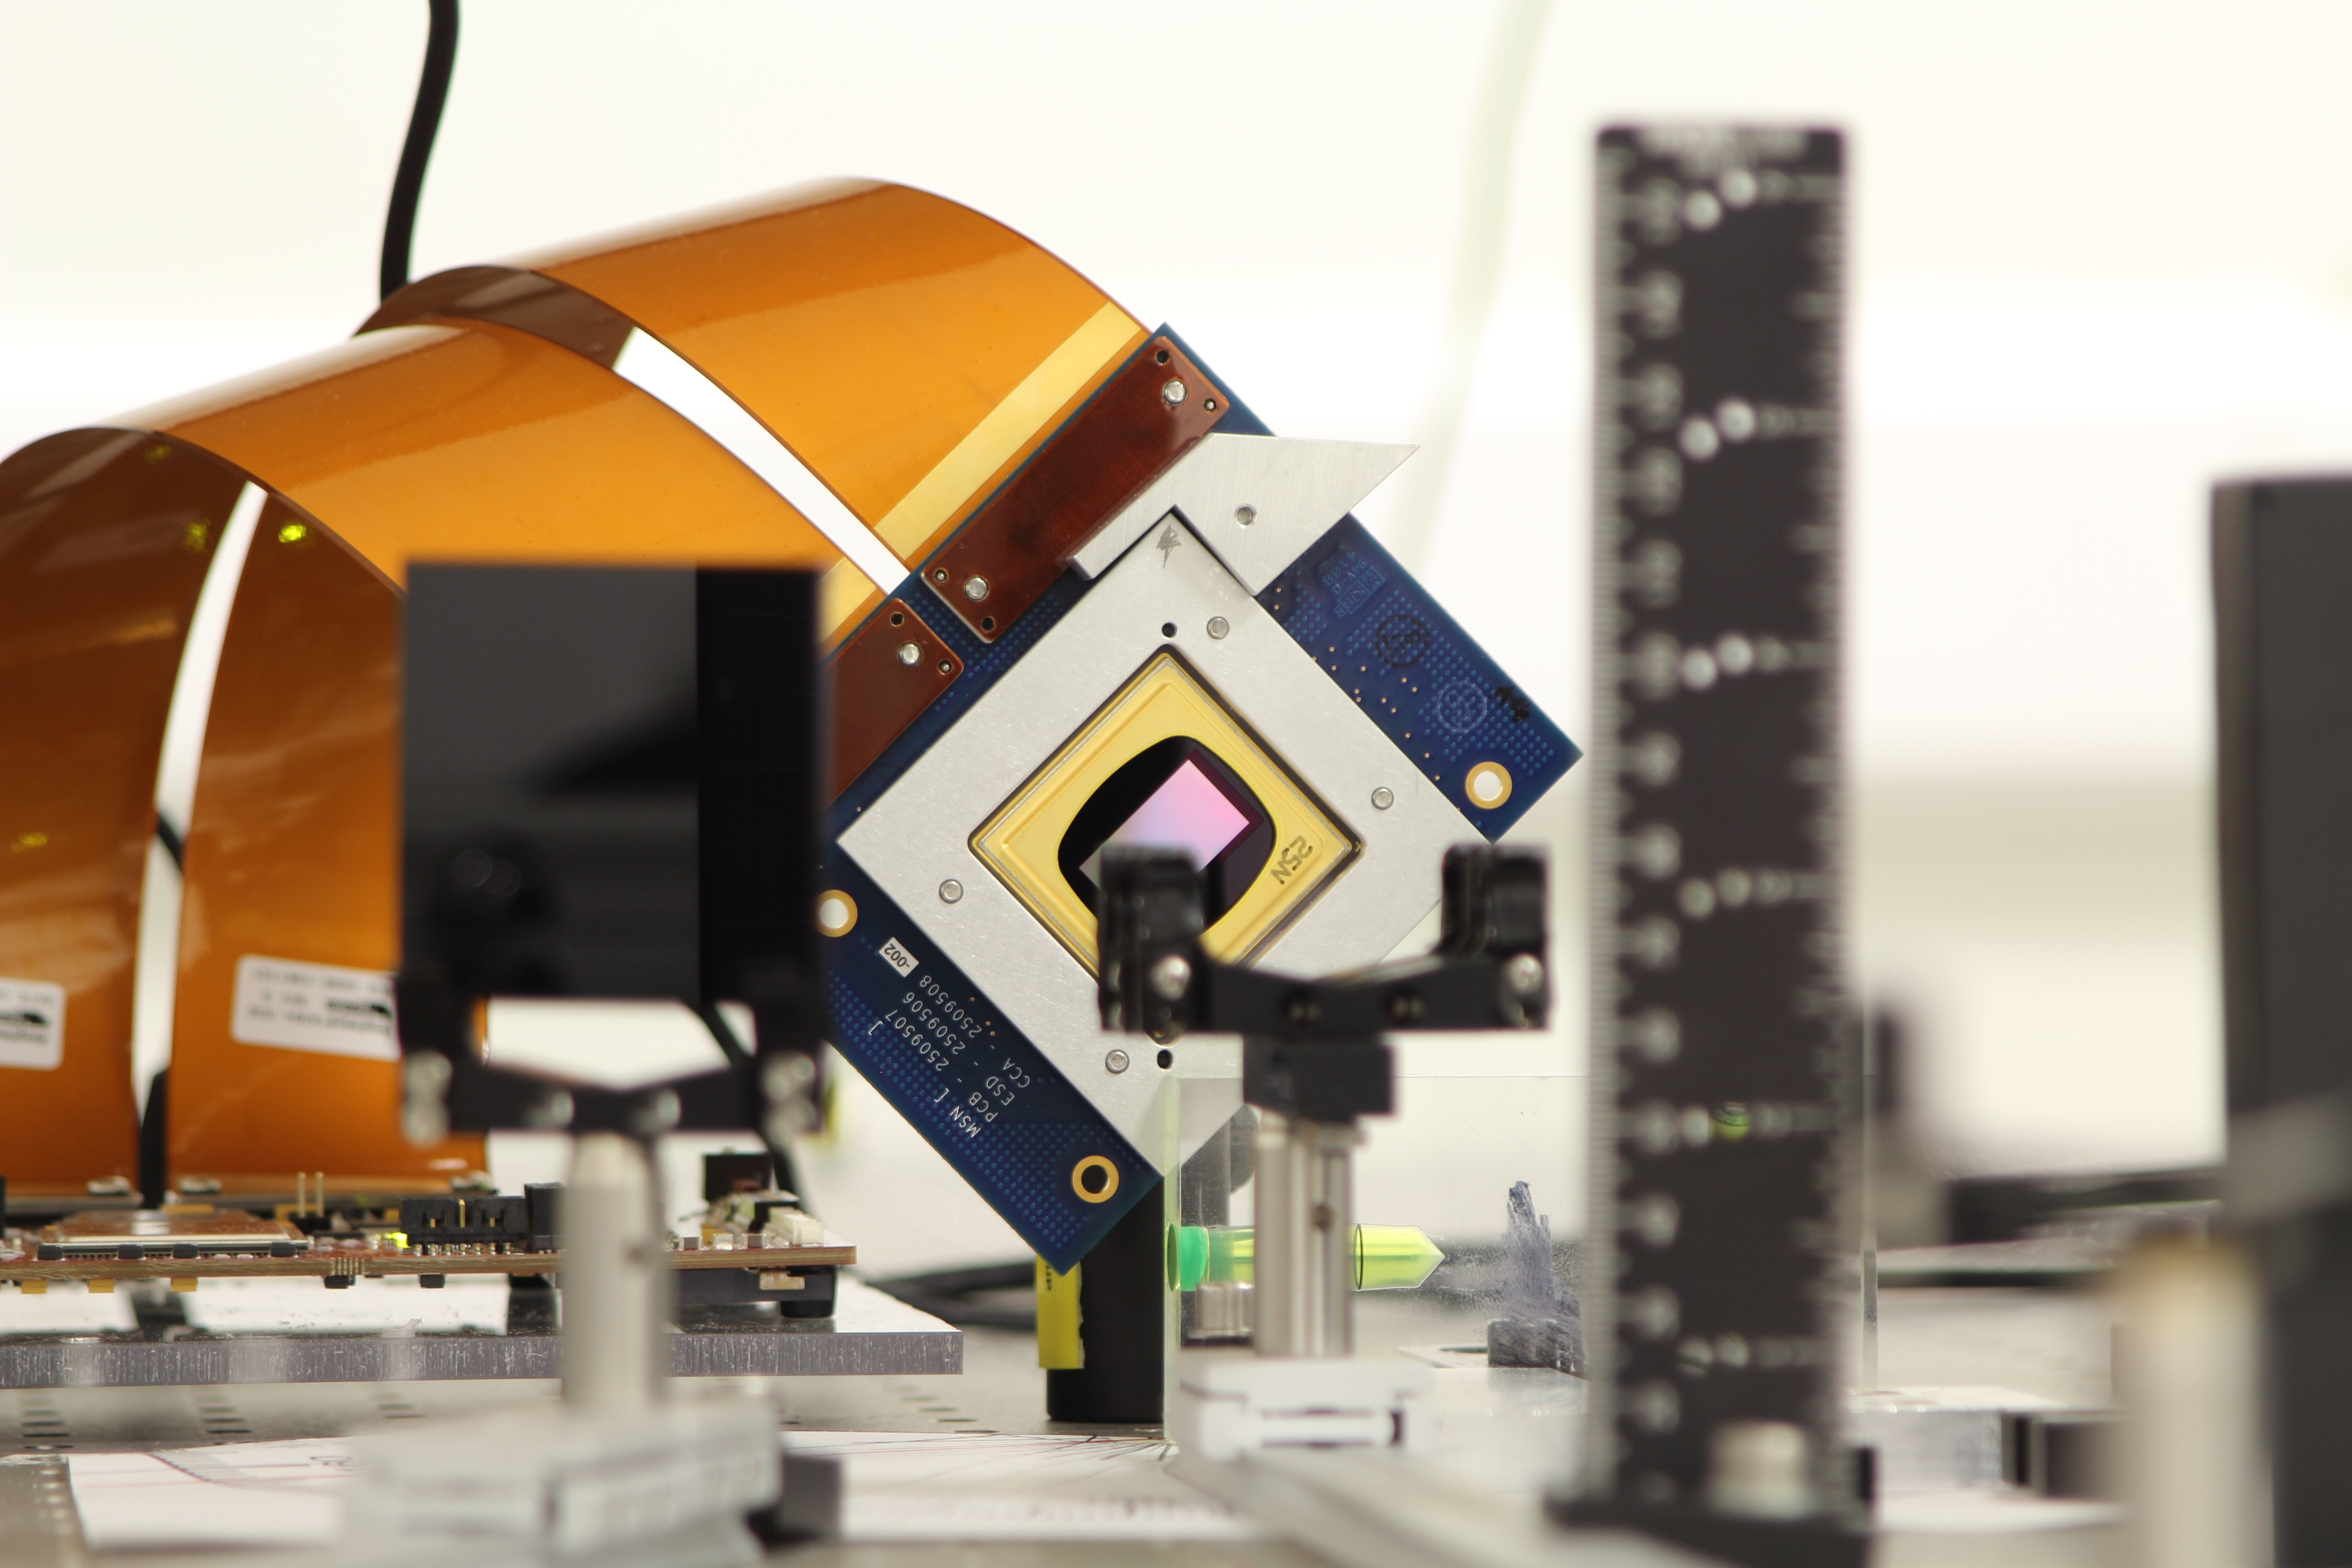 An adaptive optics-based beam monitor for characterizing beams of (anti)matter is being developed within the AVA project. Image credit: University of Liverpool/Cockcroft Institute.